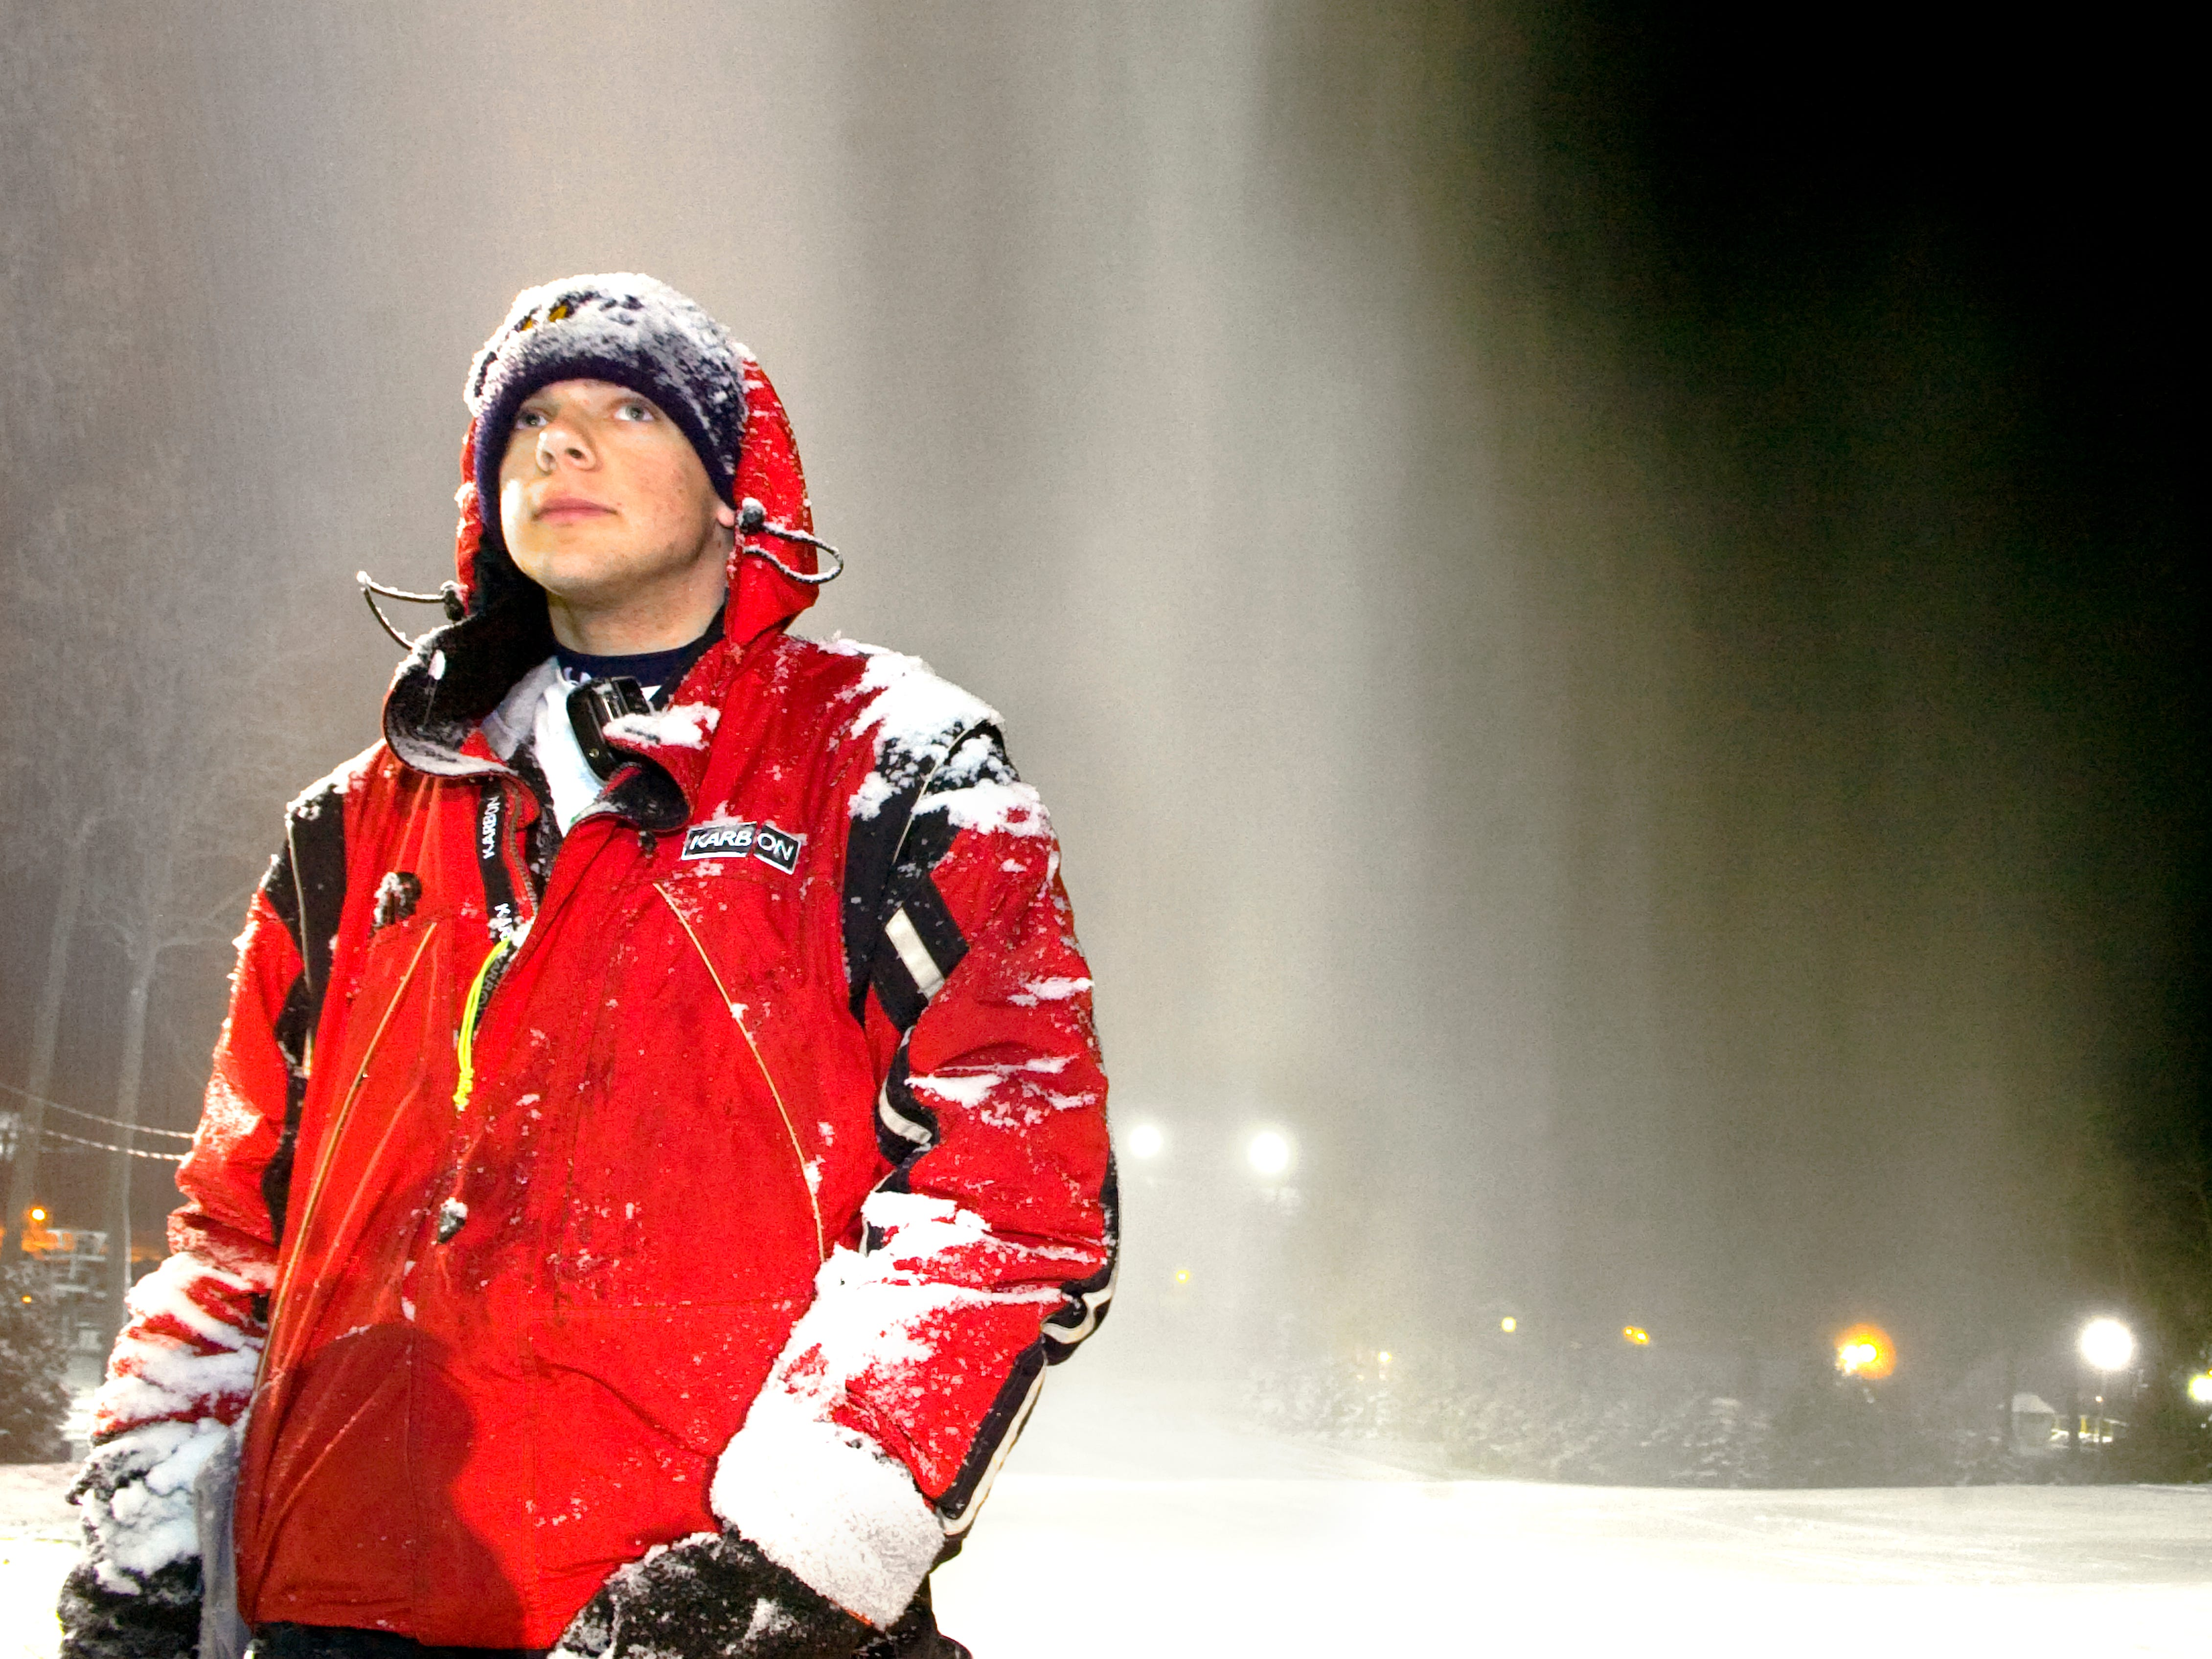 Covered in blown snow, Corey Bello watches where snow guns and fans will deposit snow at Ski Roundtop December 6, 2007. The newly made snow will be moved around in preparation for the slopes to open tonight. Bello is a student at York College and a full-time seasonal employee.